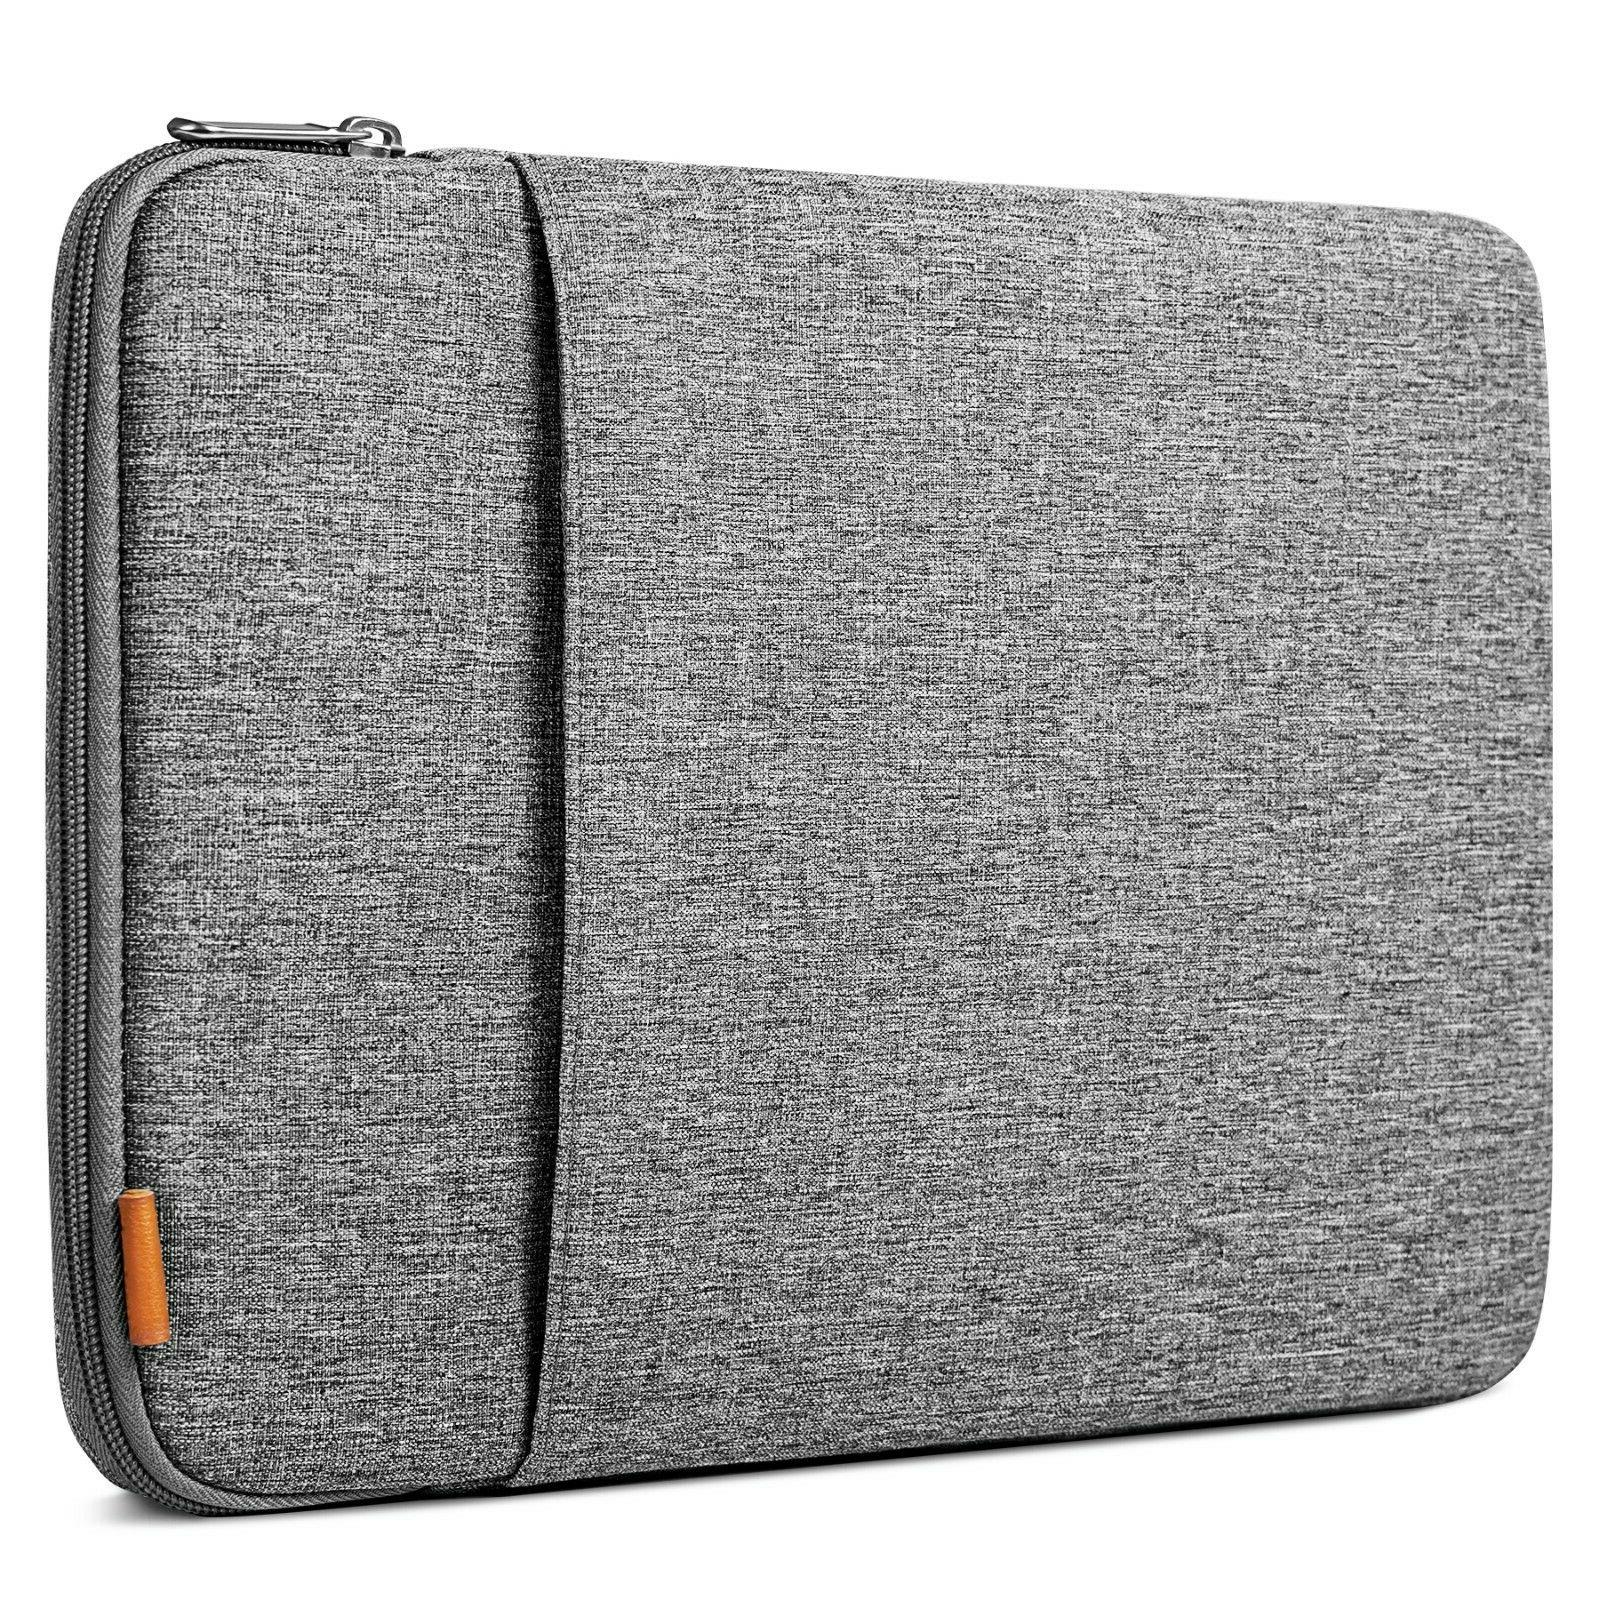 13 inch laptop case sleeve for macbook